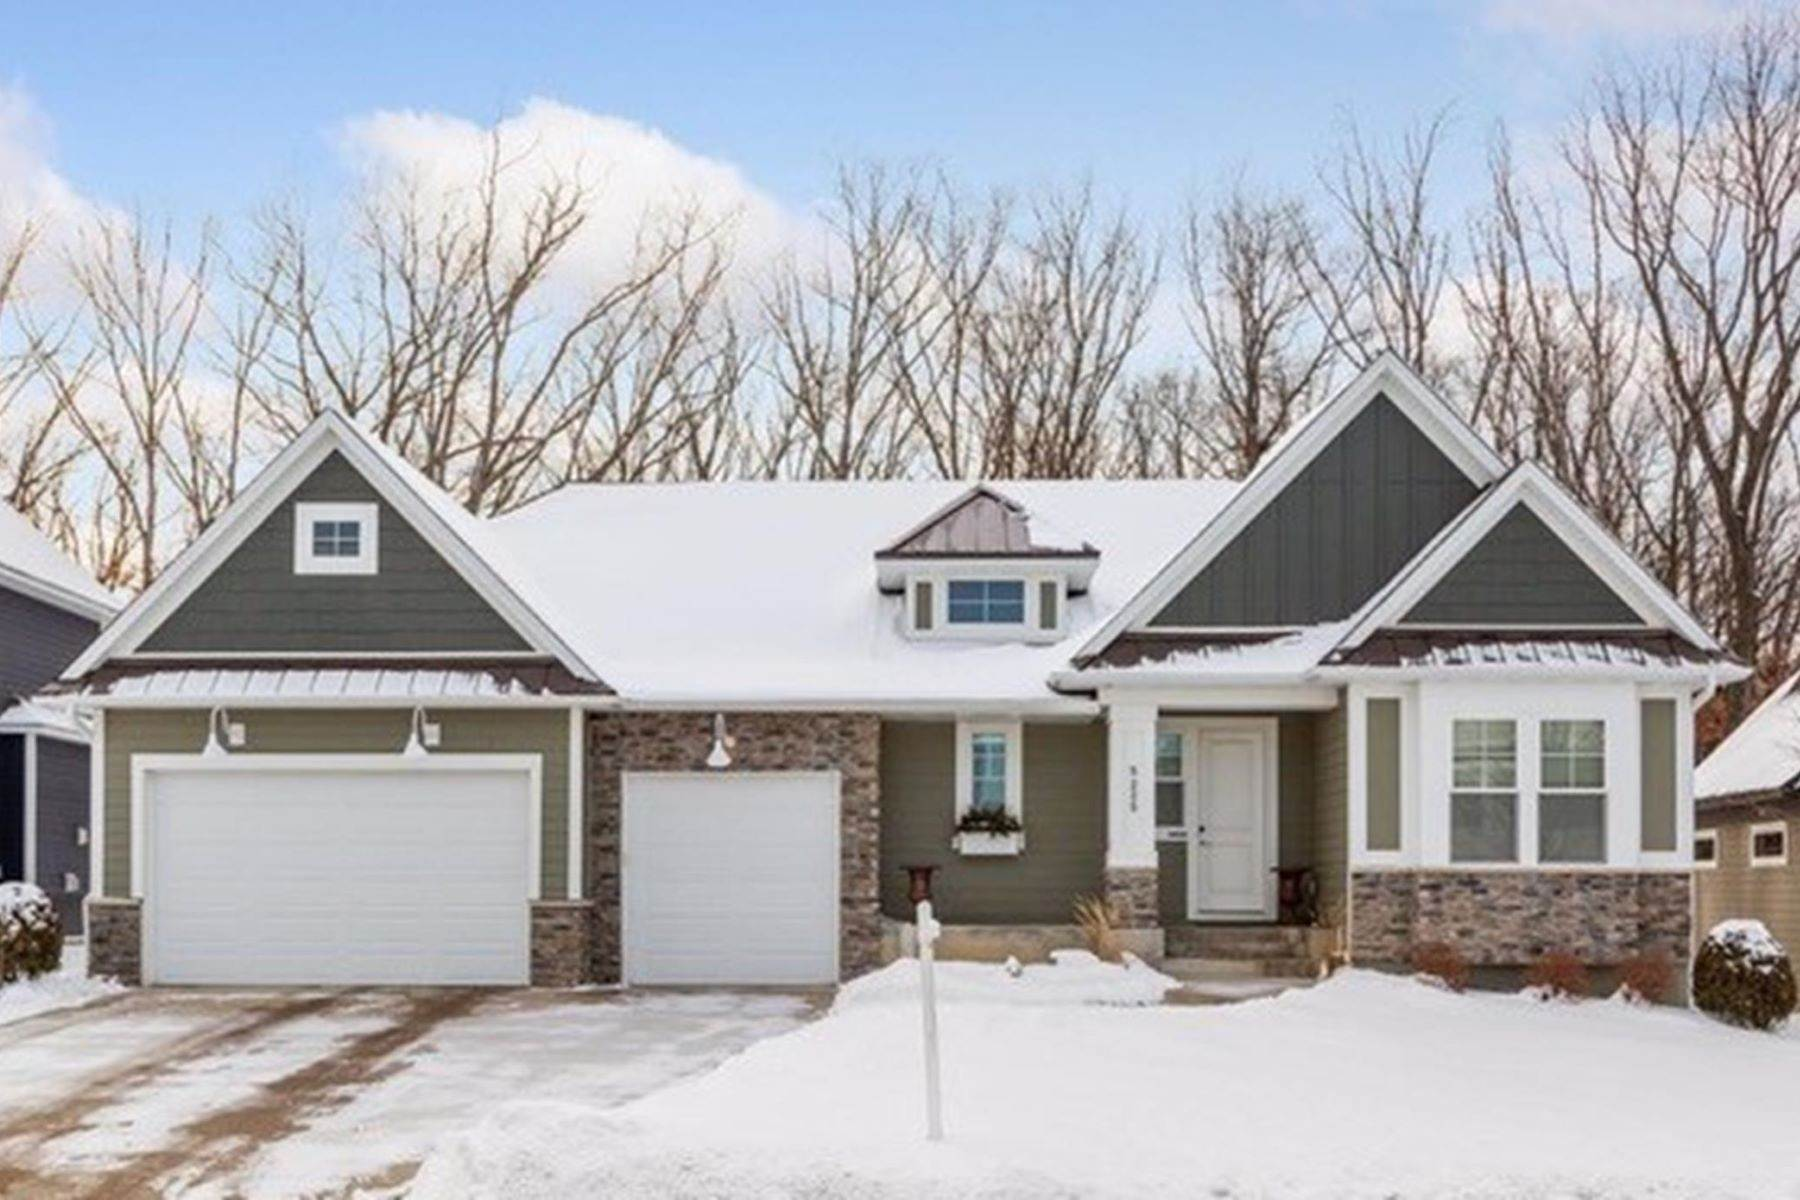 Single Family Homes für Verkauf beim Like-new one level living at its finest! 5225 Ranchview Lane N, Plymouth, Minnesota 55446 Vereinigte Staaten